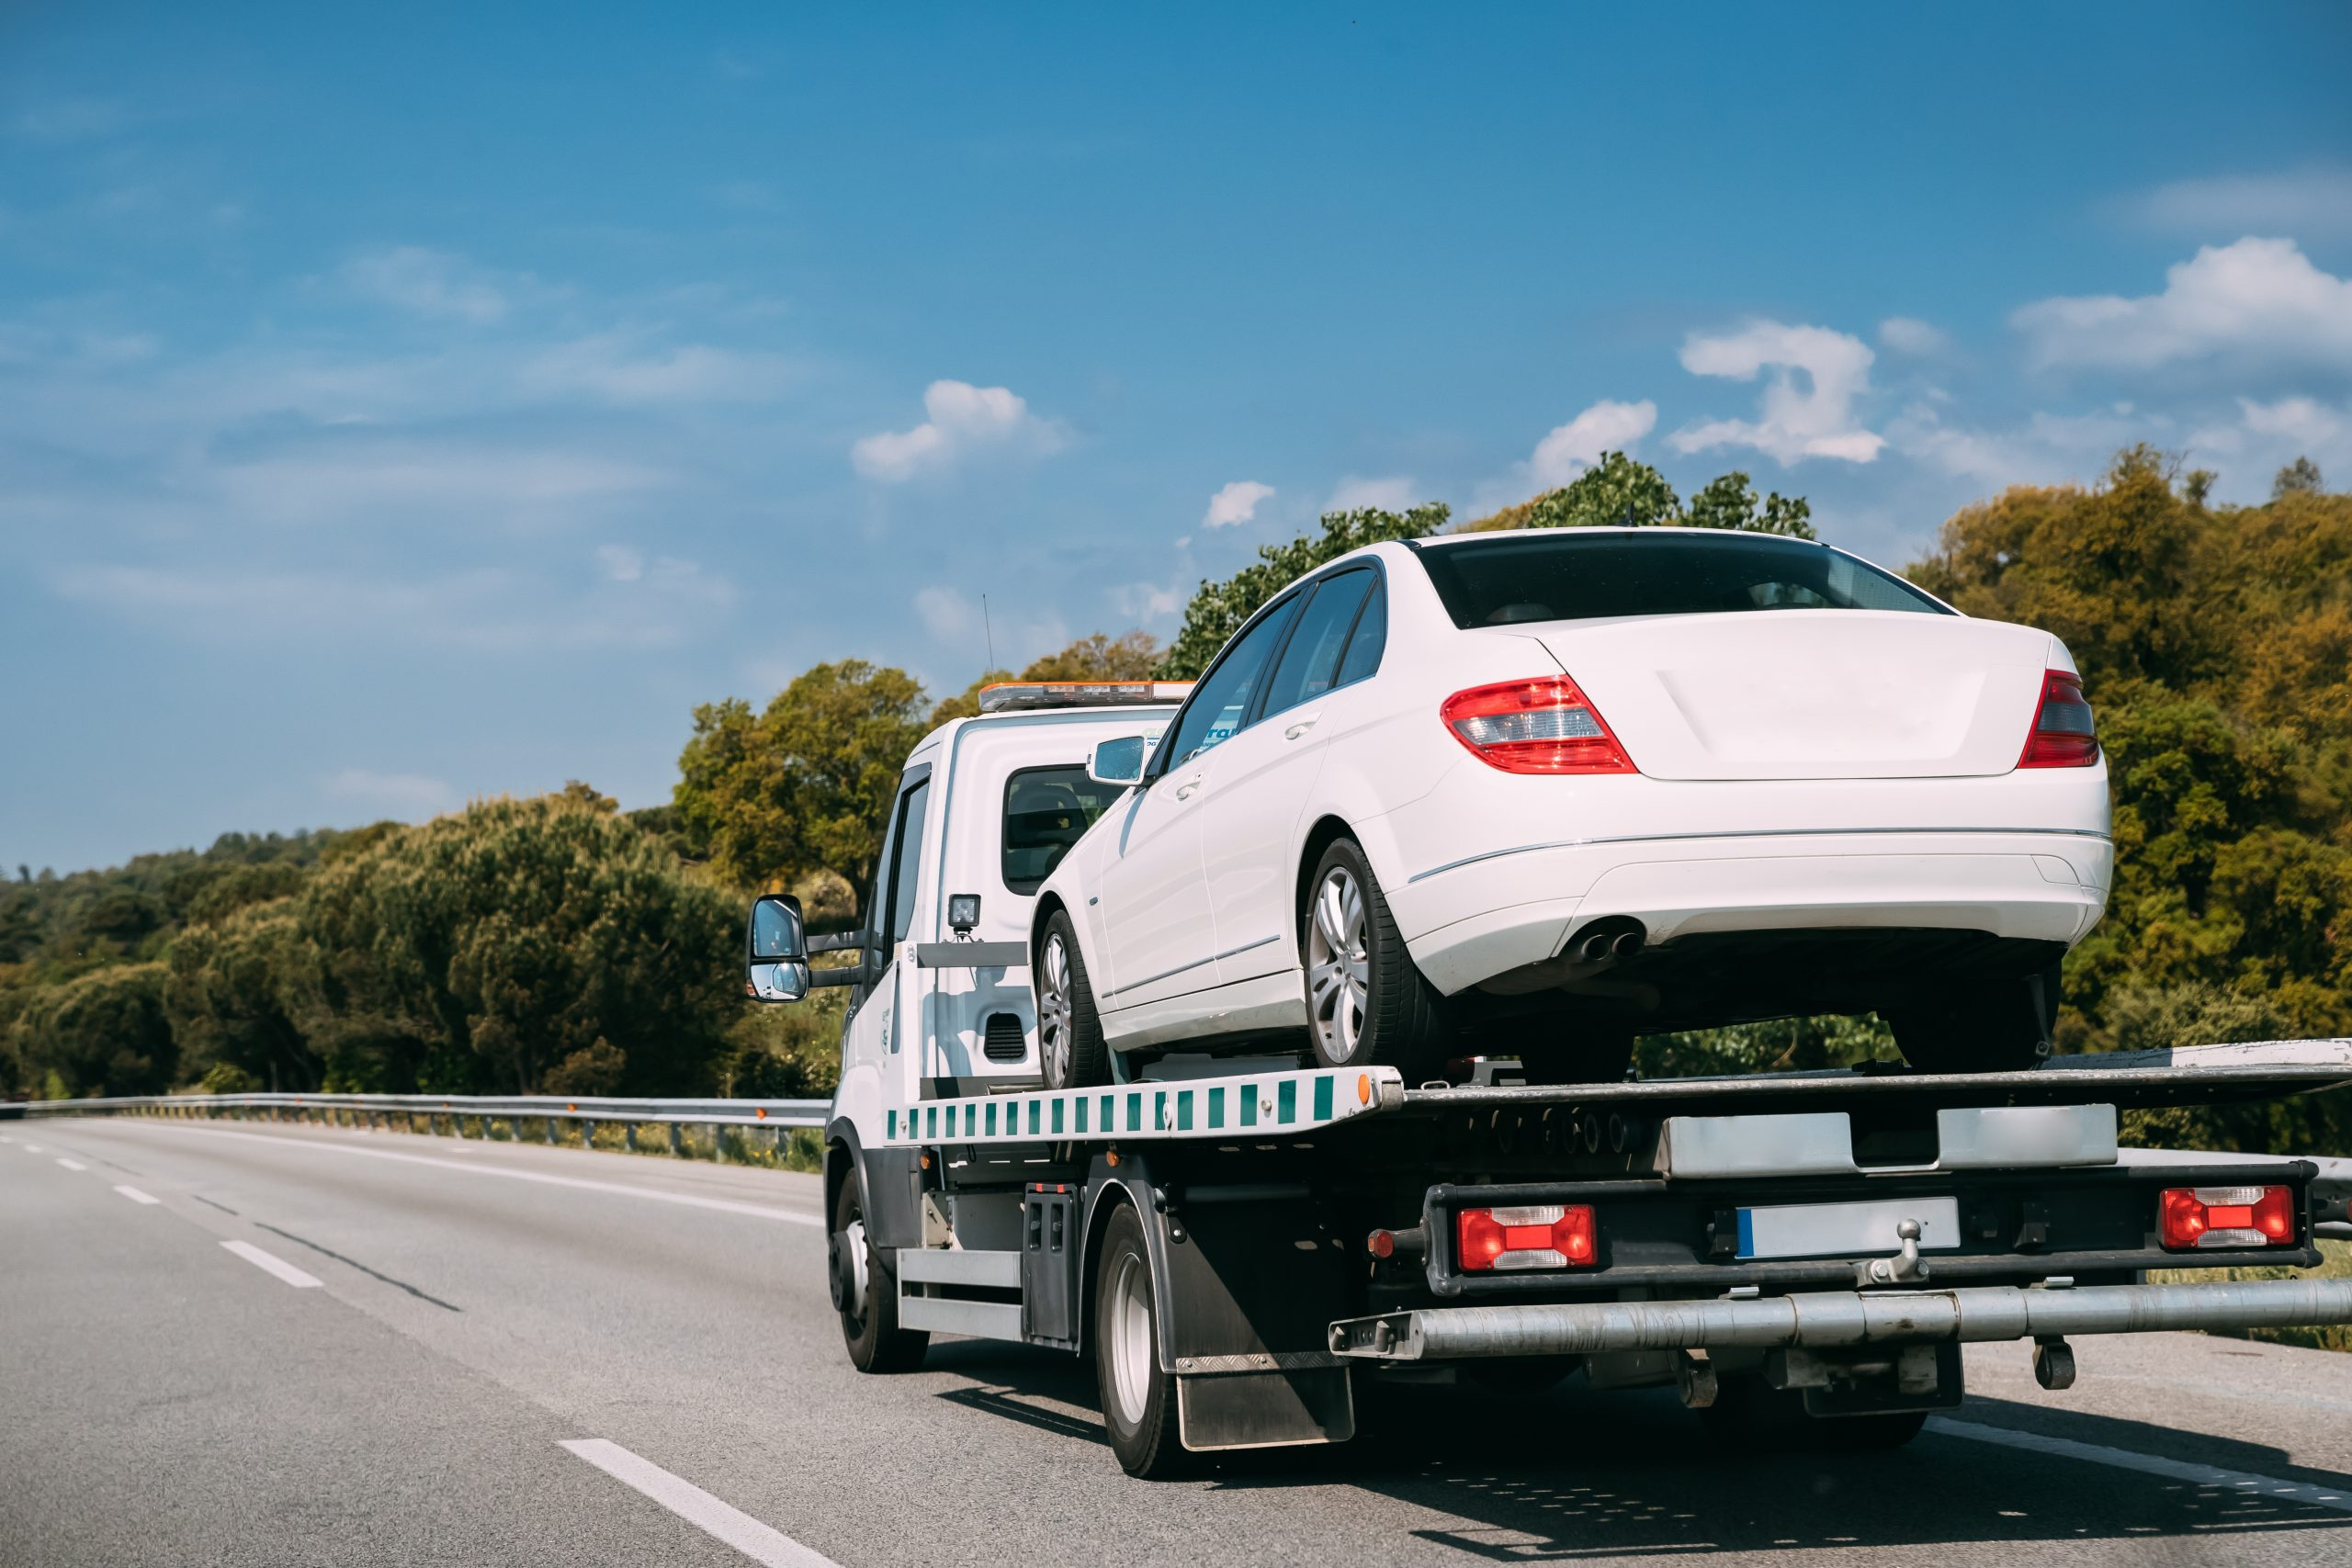 Tow truck transporting white car